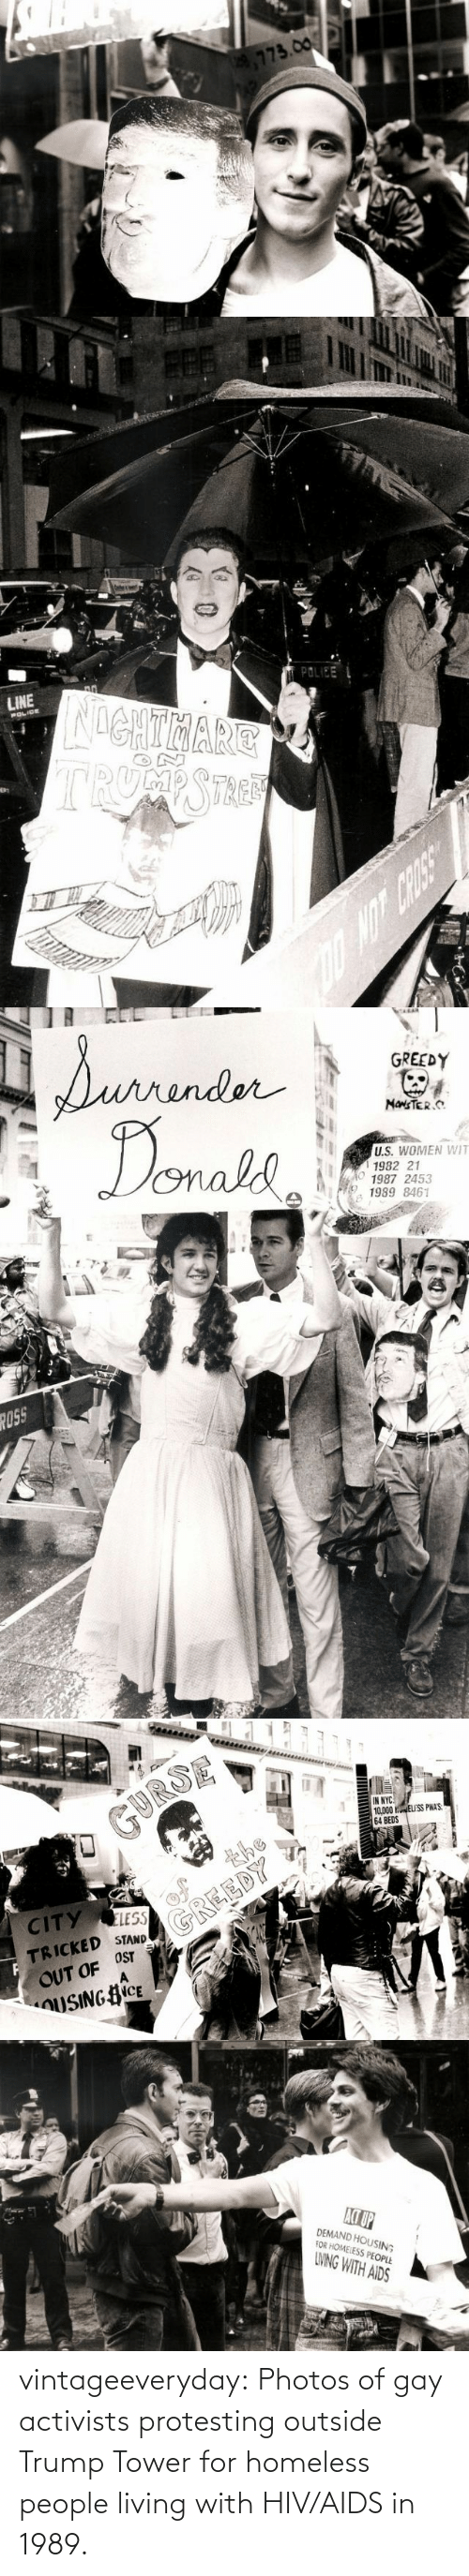 Homeless, Protest, and Tumblr: vintageeveryday:  Photos of gay activists protesting outside Trump Tower for homeless people living with HIV/AIDS in 1989.